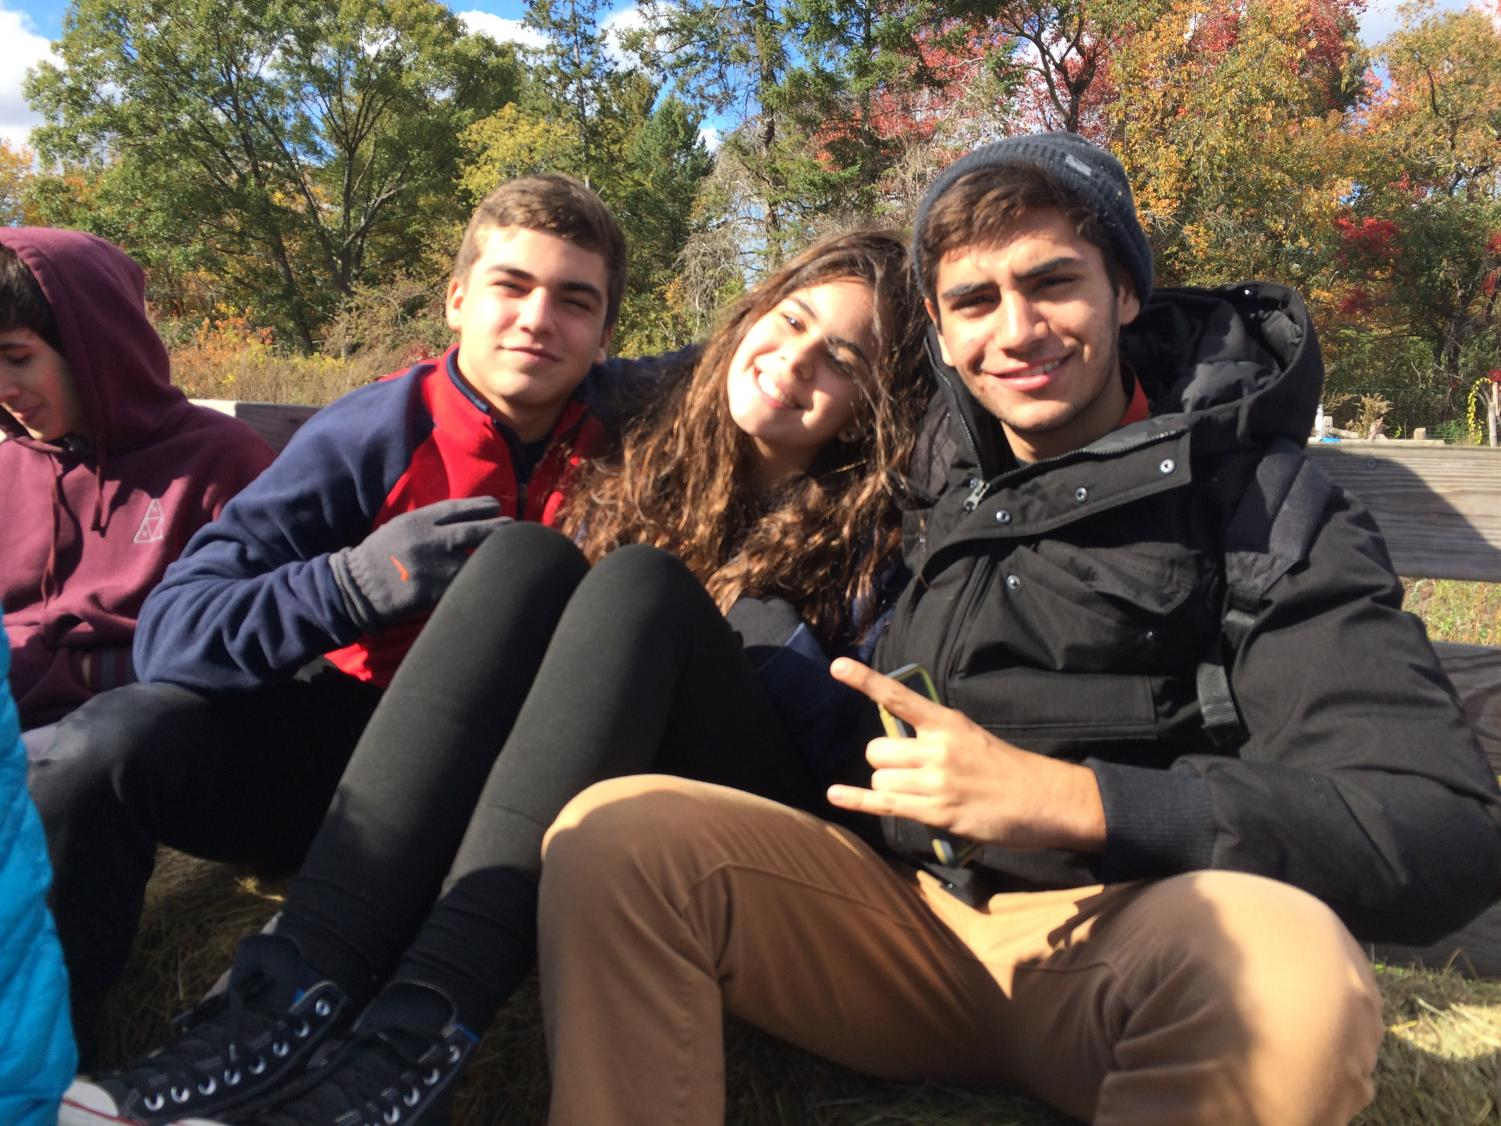 International students come together for an annual fall apple picking trip at Russel Orchards in Ipswich. Bonding activities such as these provide valuable peer support.